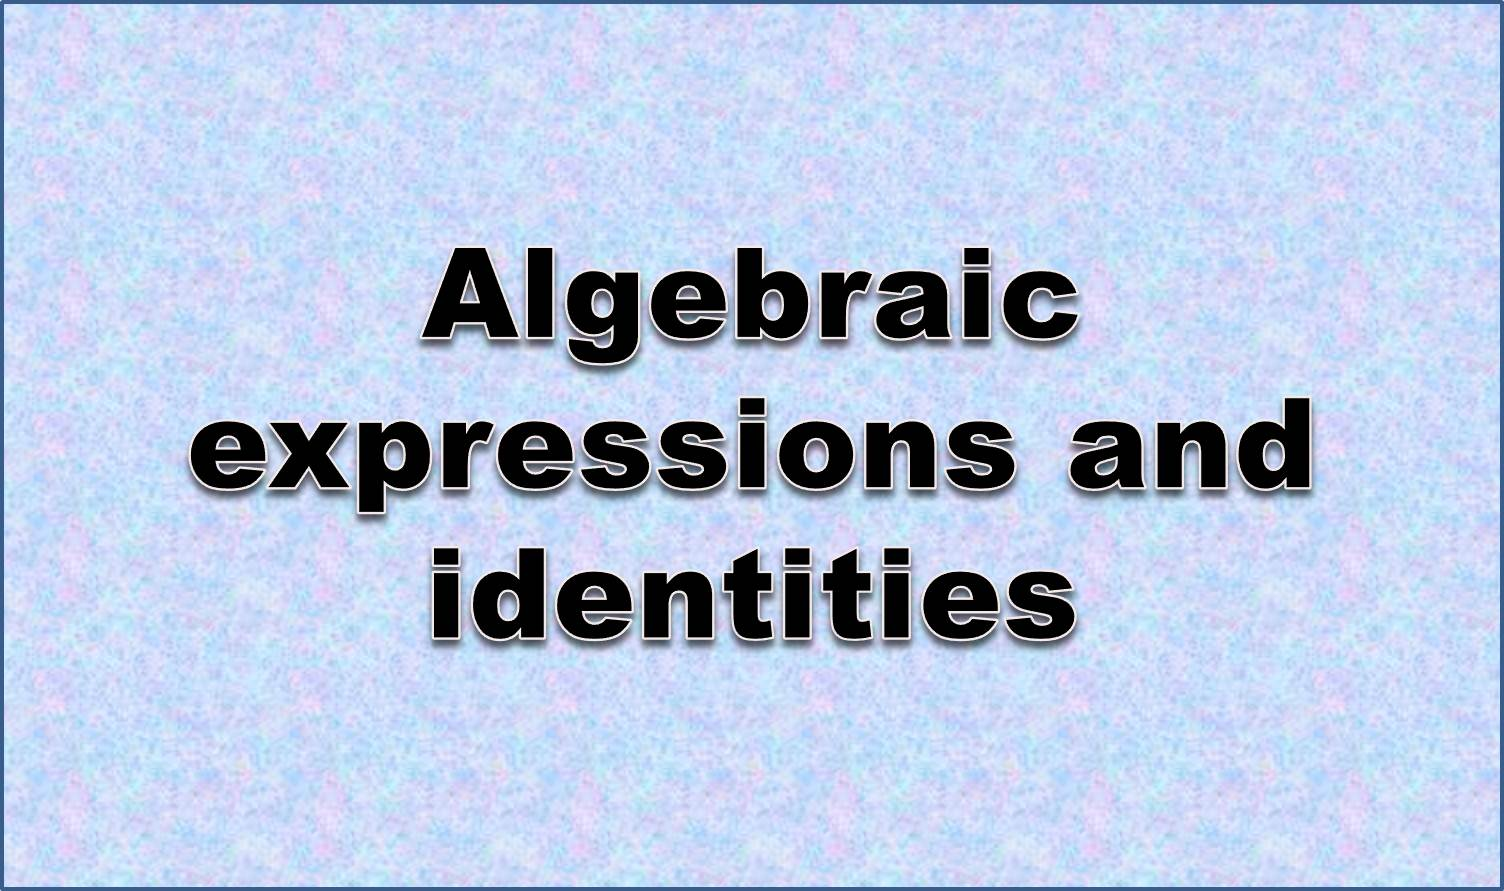 http://study.aisectonline.com/images/Variables, expressions and equations.jpg